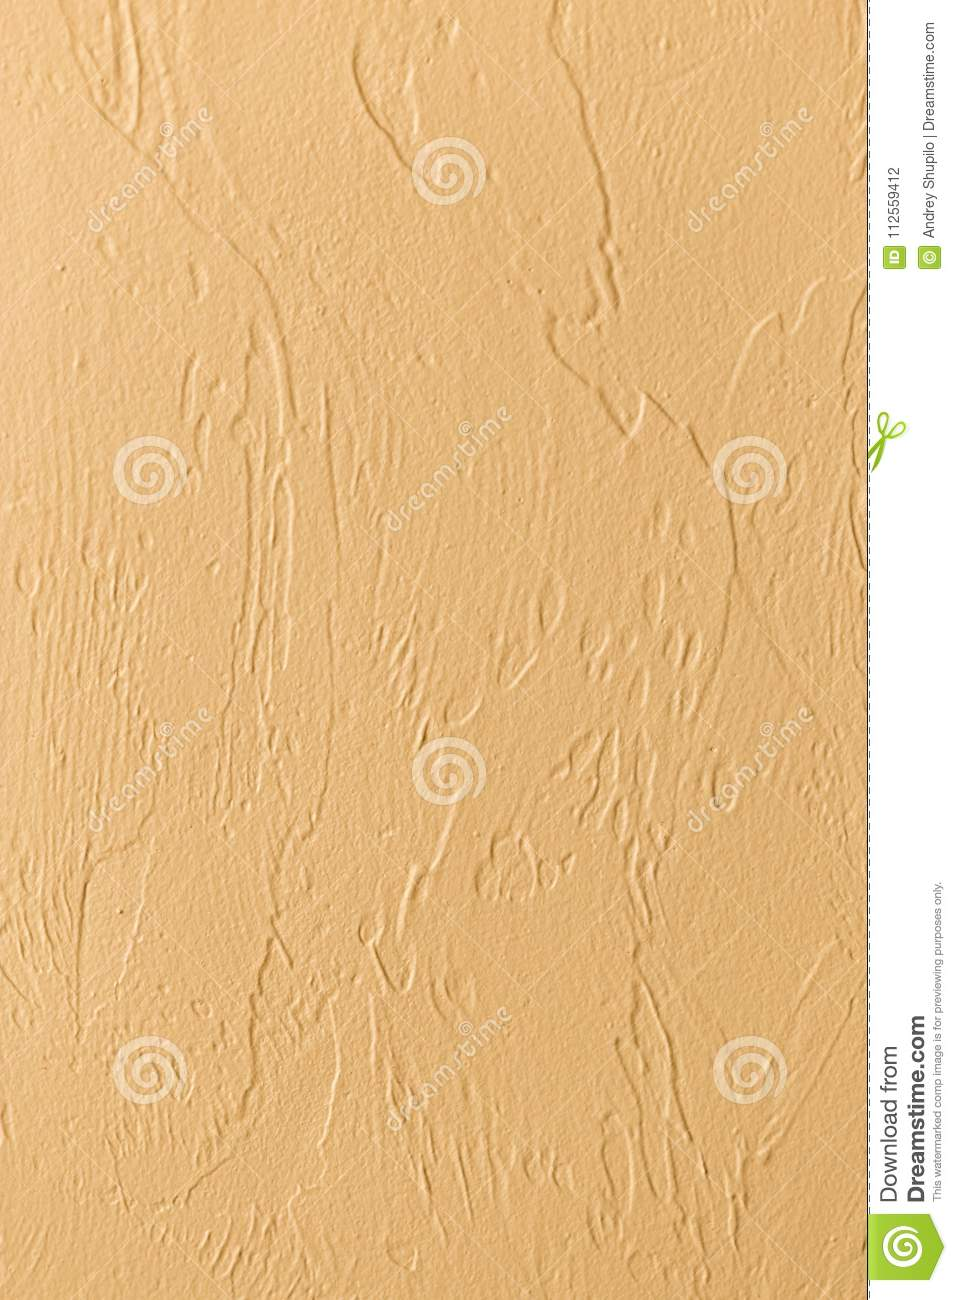 Dorable Decorative Plaster Wall Panels Images - All About Wallart ...